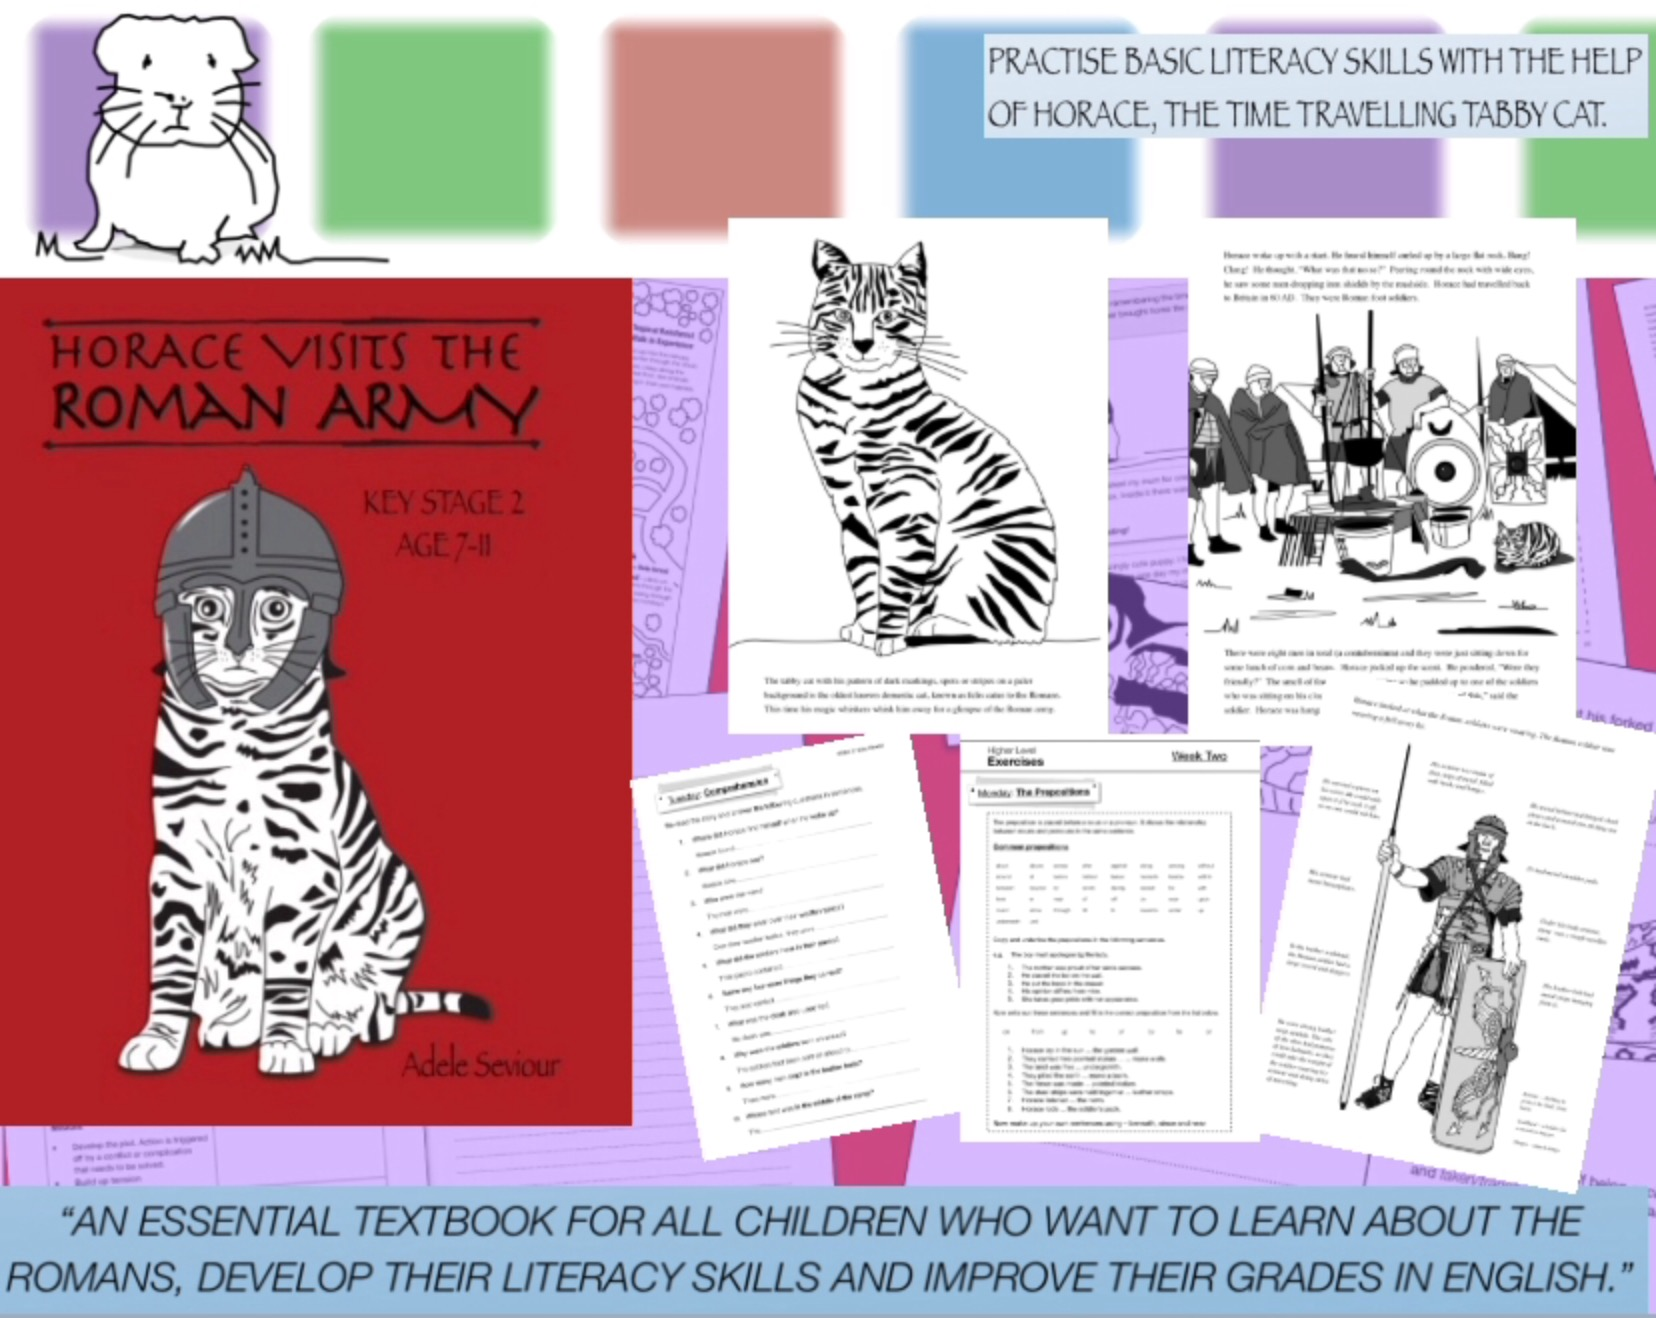 Horace Visits The Roman Army (7-11 years) Print Version